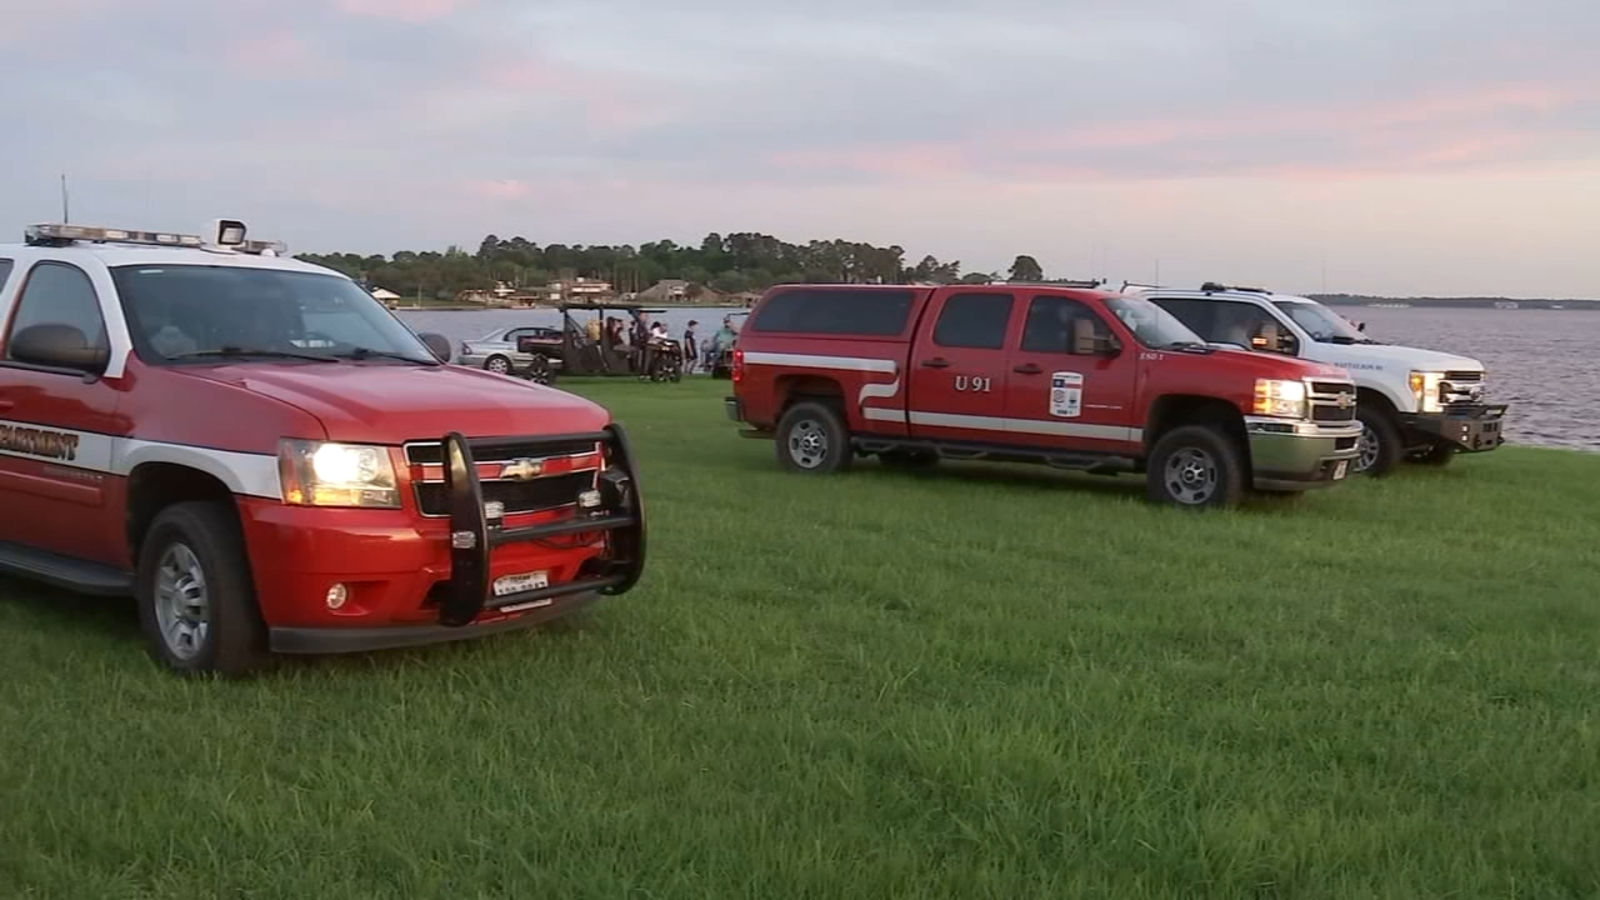 Search resumes Saturday for 2 missing boaters in Lake Conroe